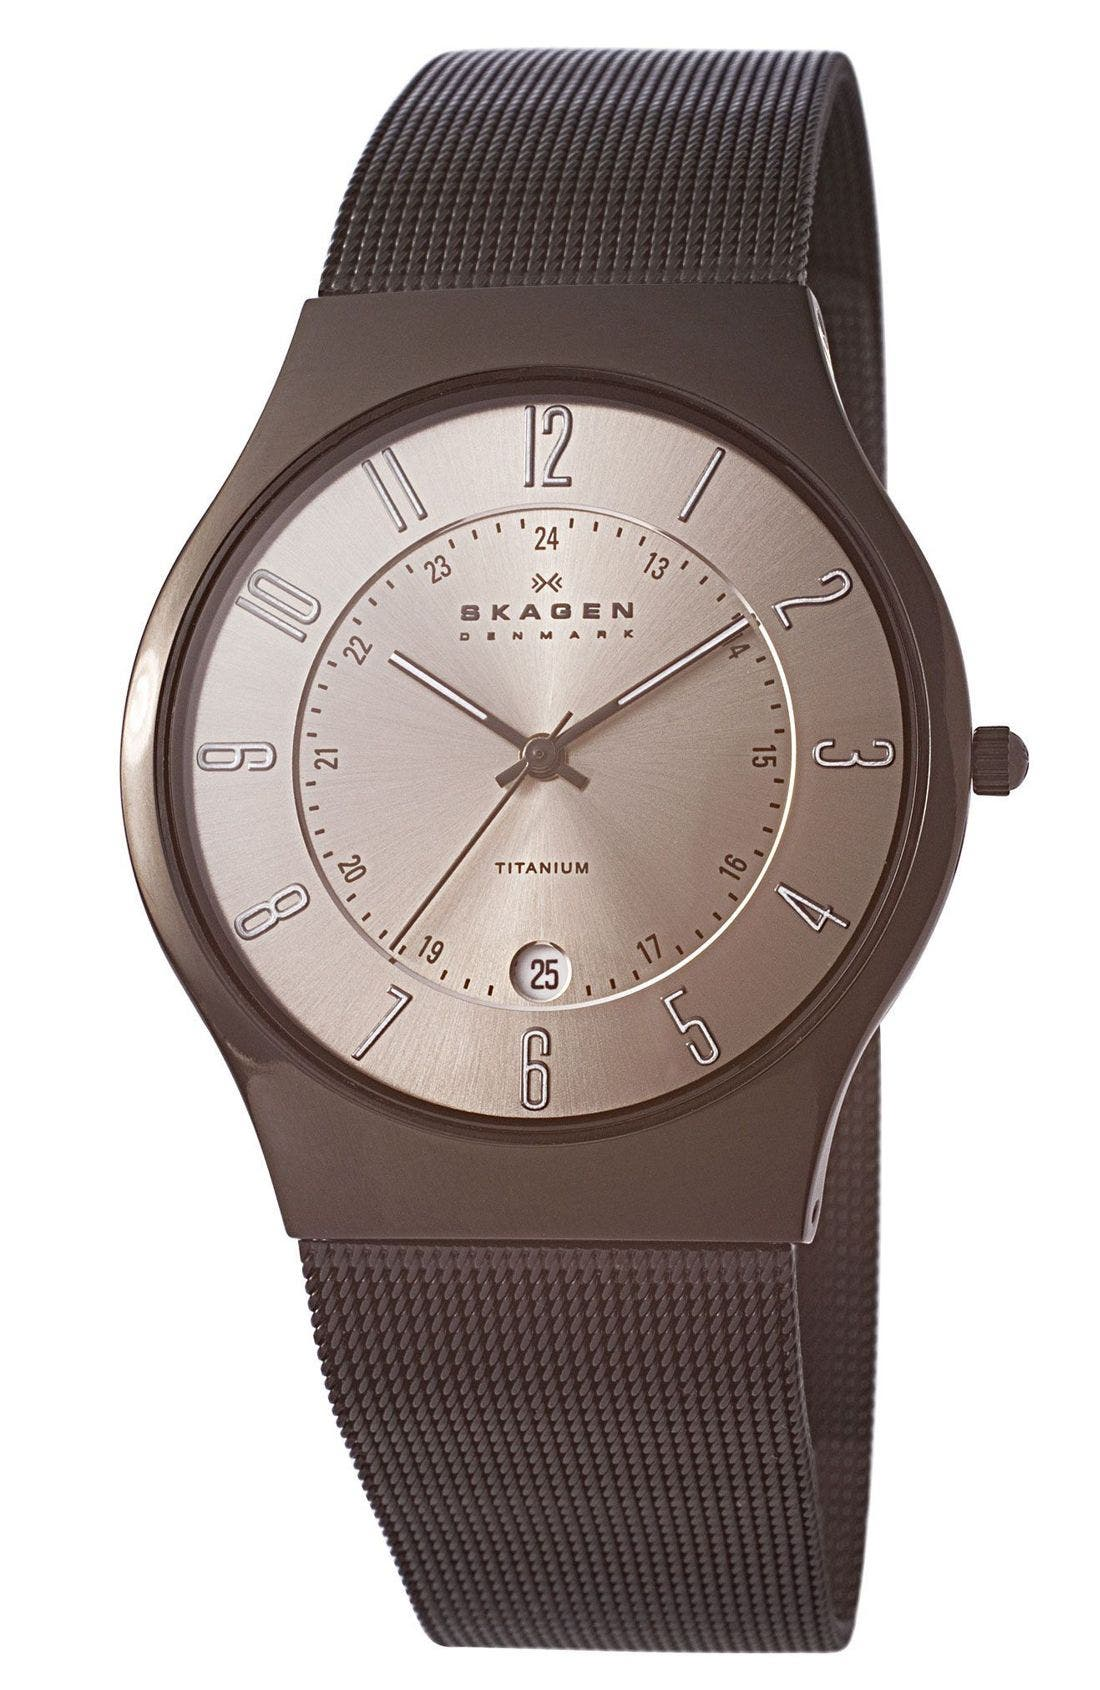 'Grenen' Titanium Case Watch,                             Main thumbnail 4, color,